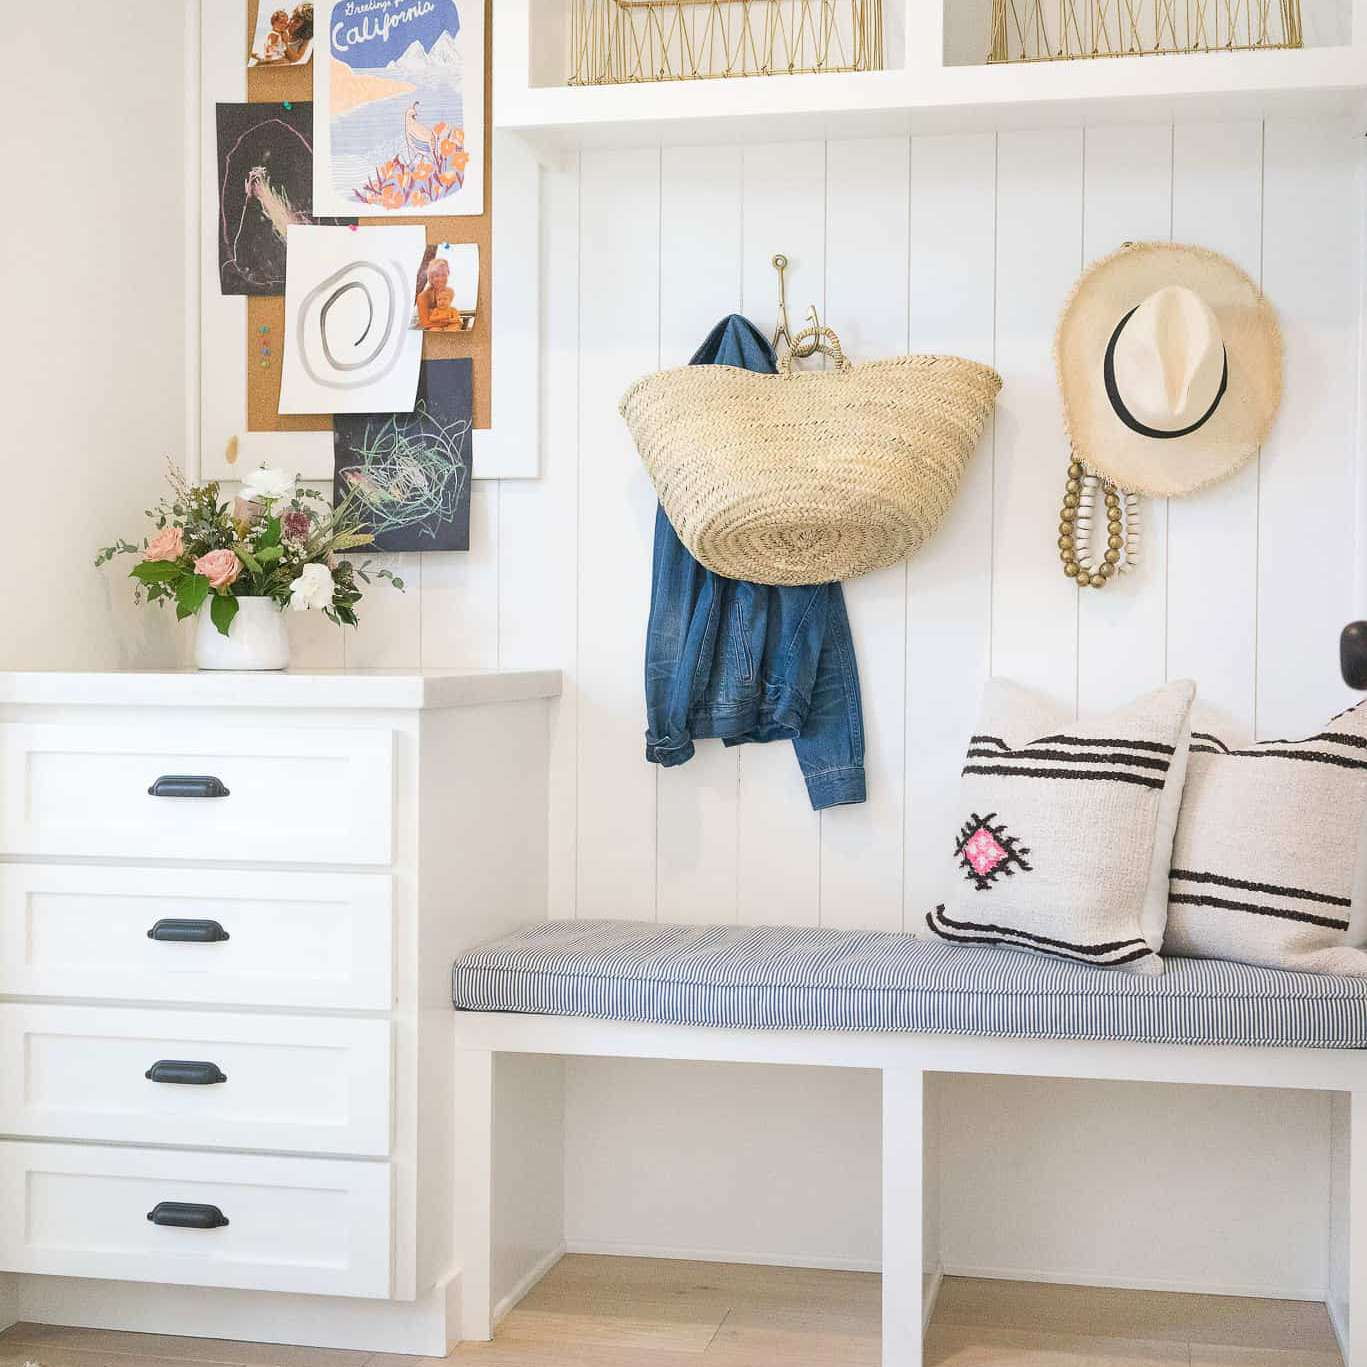 Mudroom with drawers and open shelves